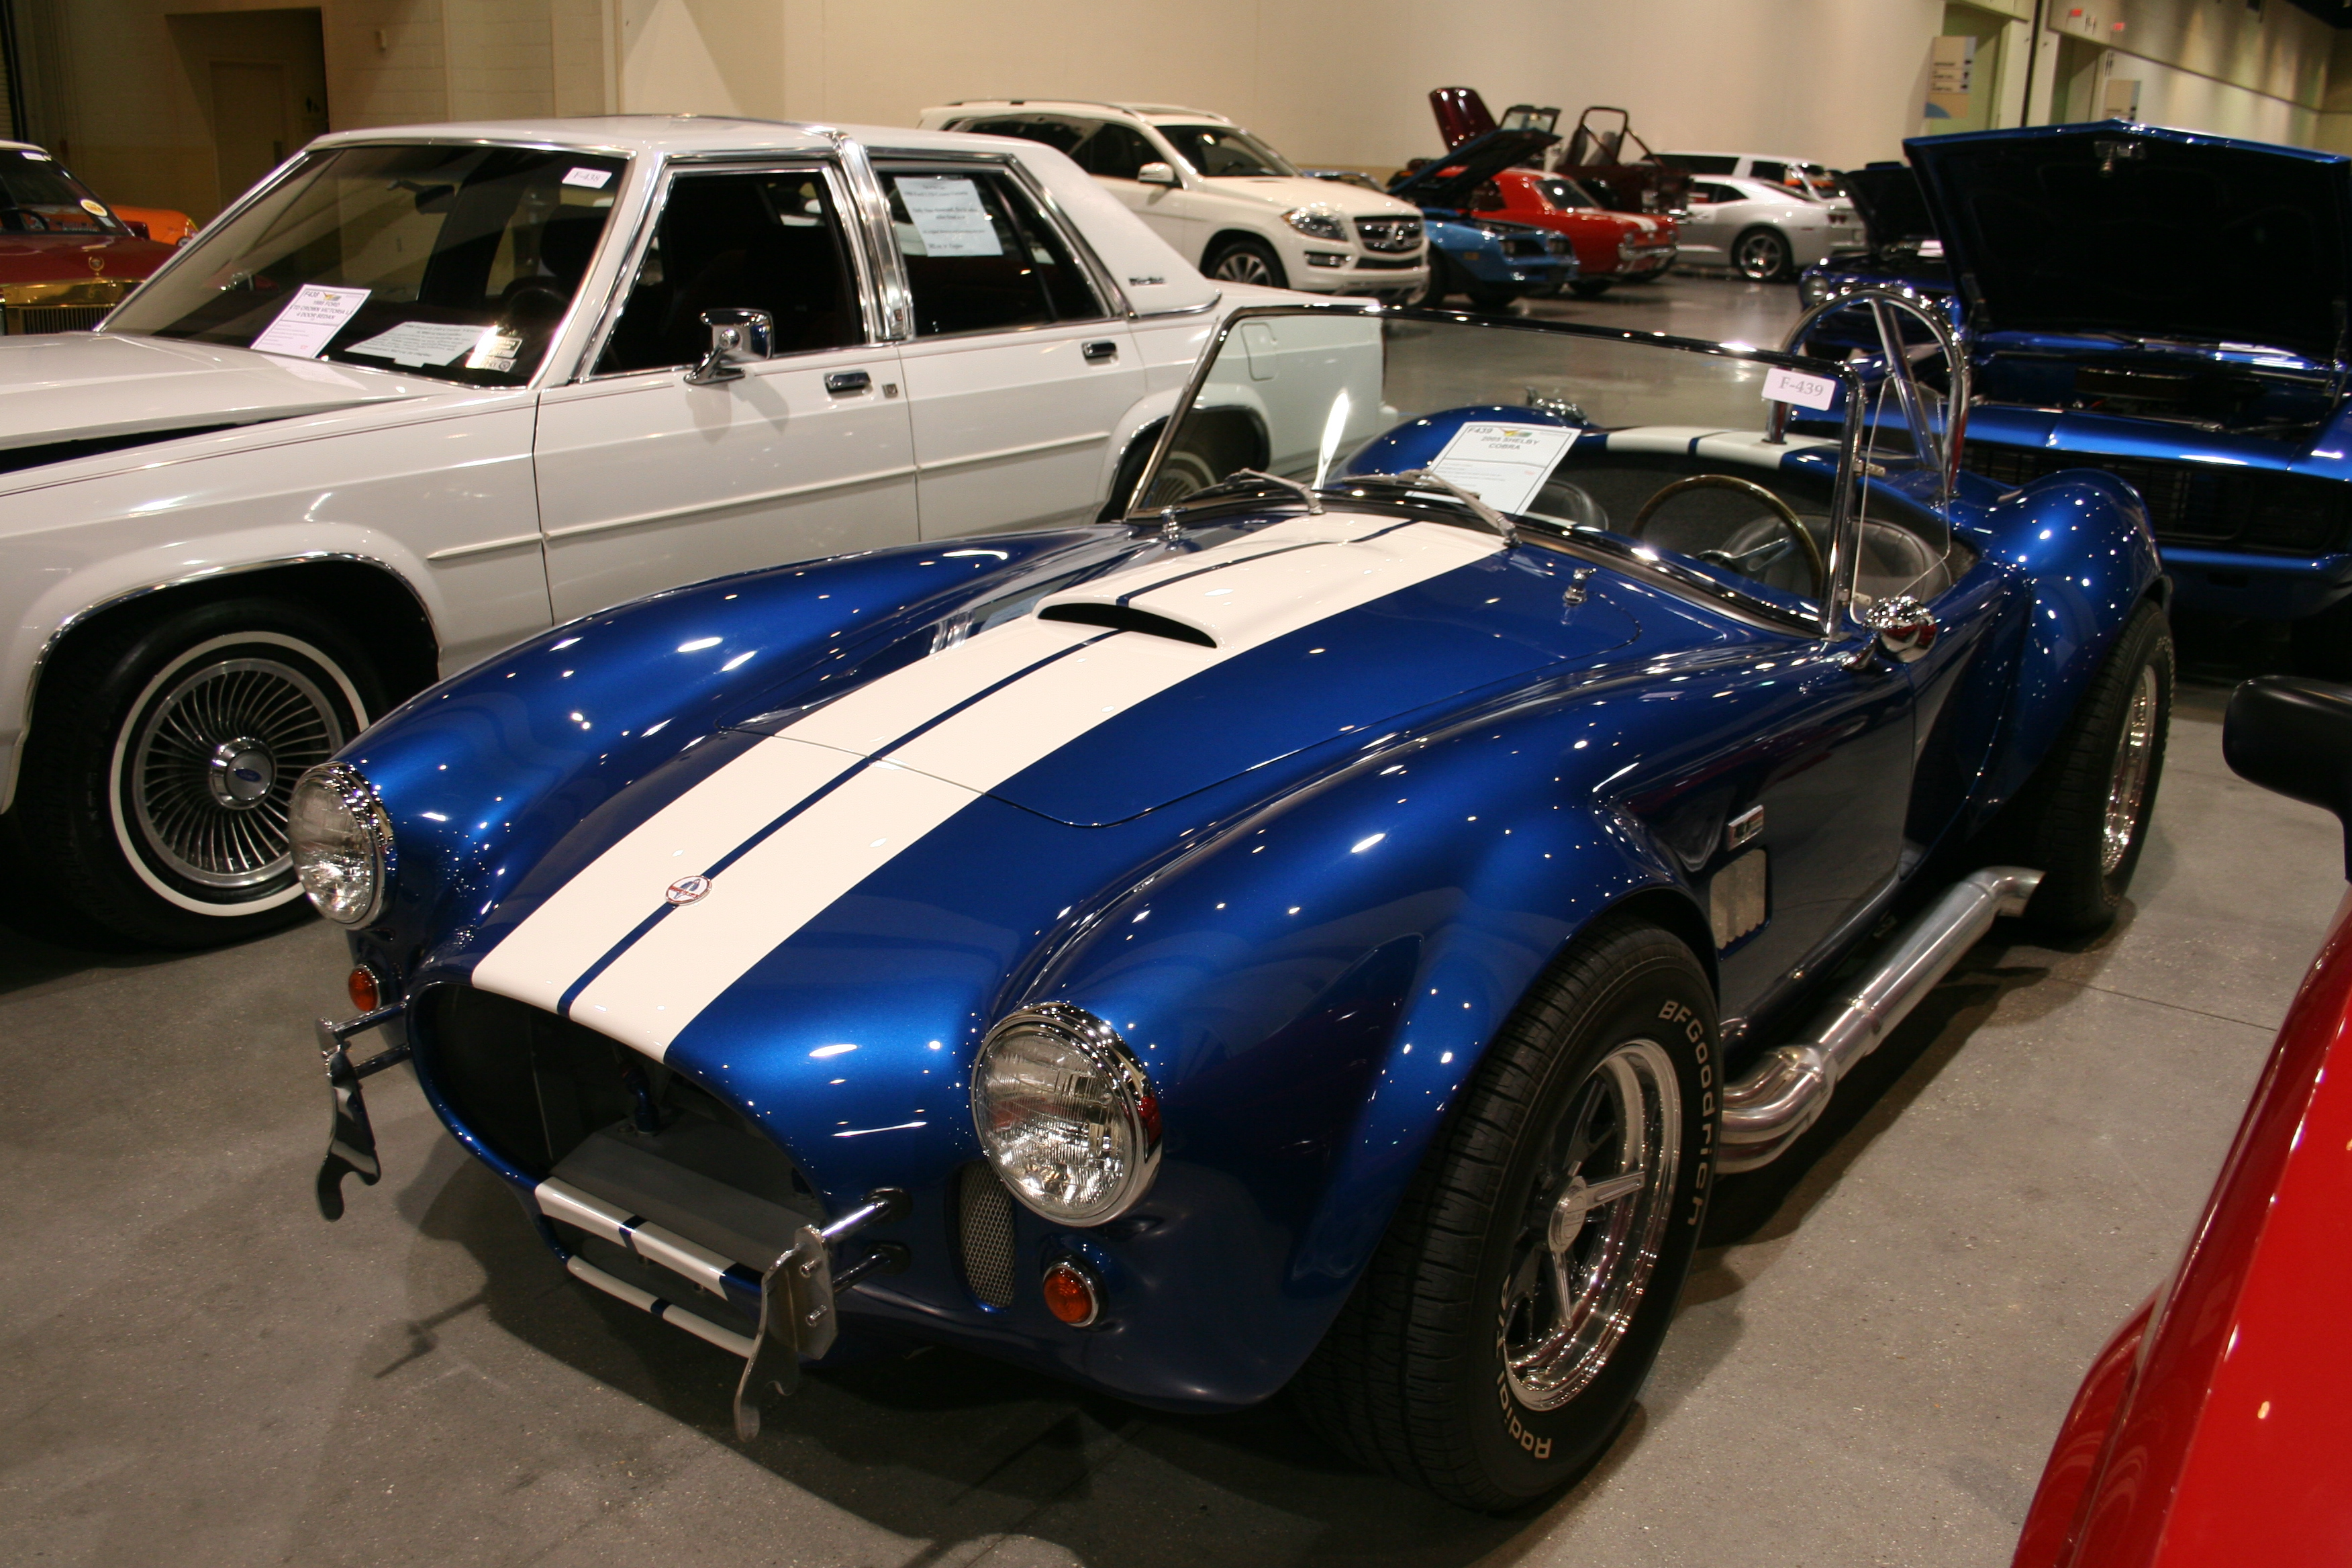 2005 SHELBY COBRA For Sale at Vicari Auctions Biloxi, 2017